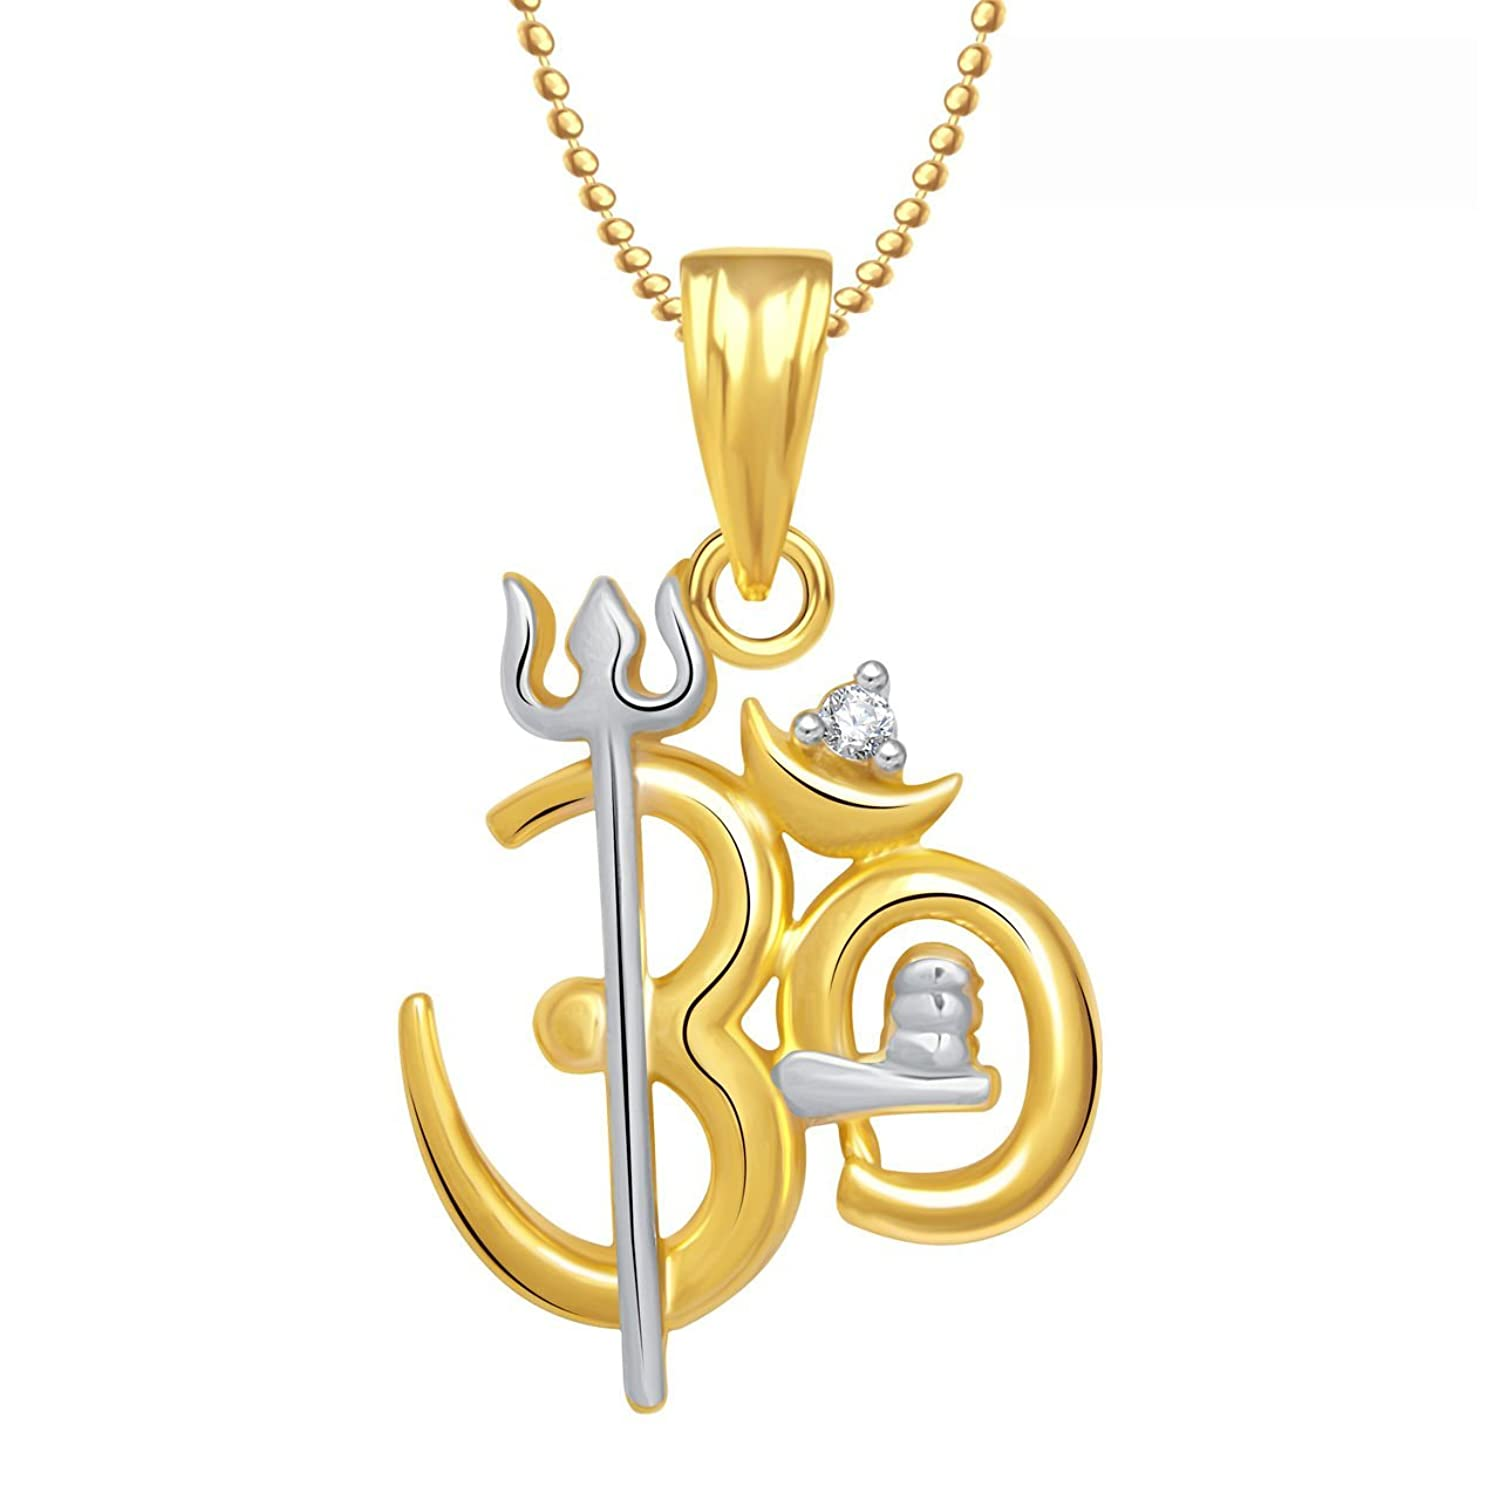 women cz american catalog jewmeenaz com alphabet meenaz gold for buy gifts diamond set in images pdp pendant with m heart lockets letter product and love locket paytm s plated jewellery valentine chain men